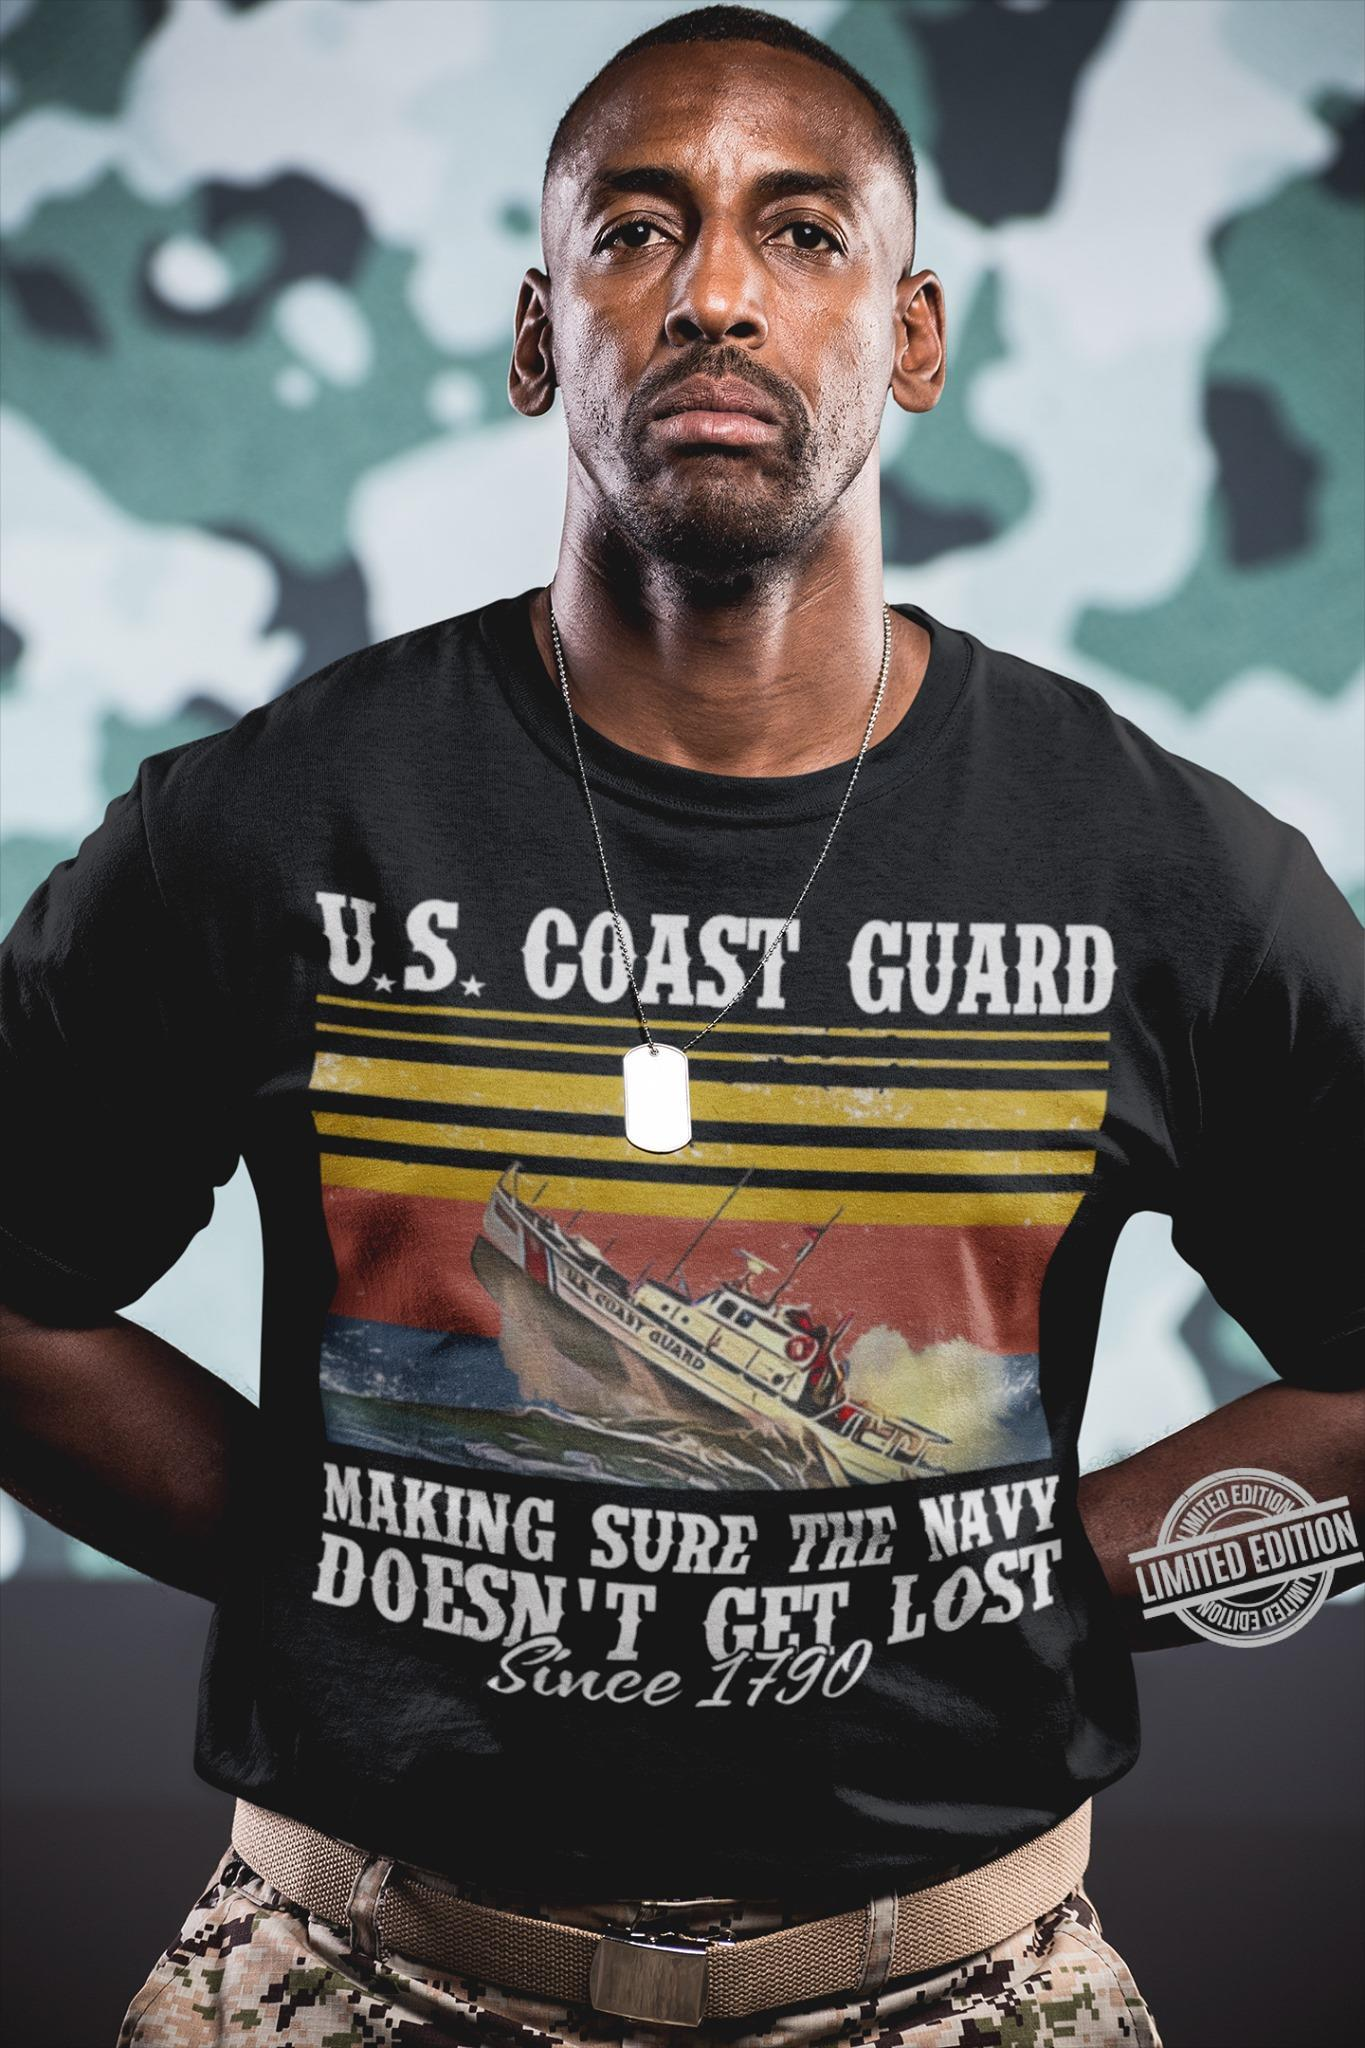 U.S Coast Guuard Making Sure The Navy Doesn't Get Lost Since 1790 Shirt